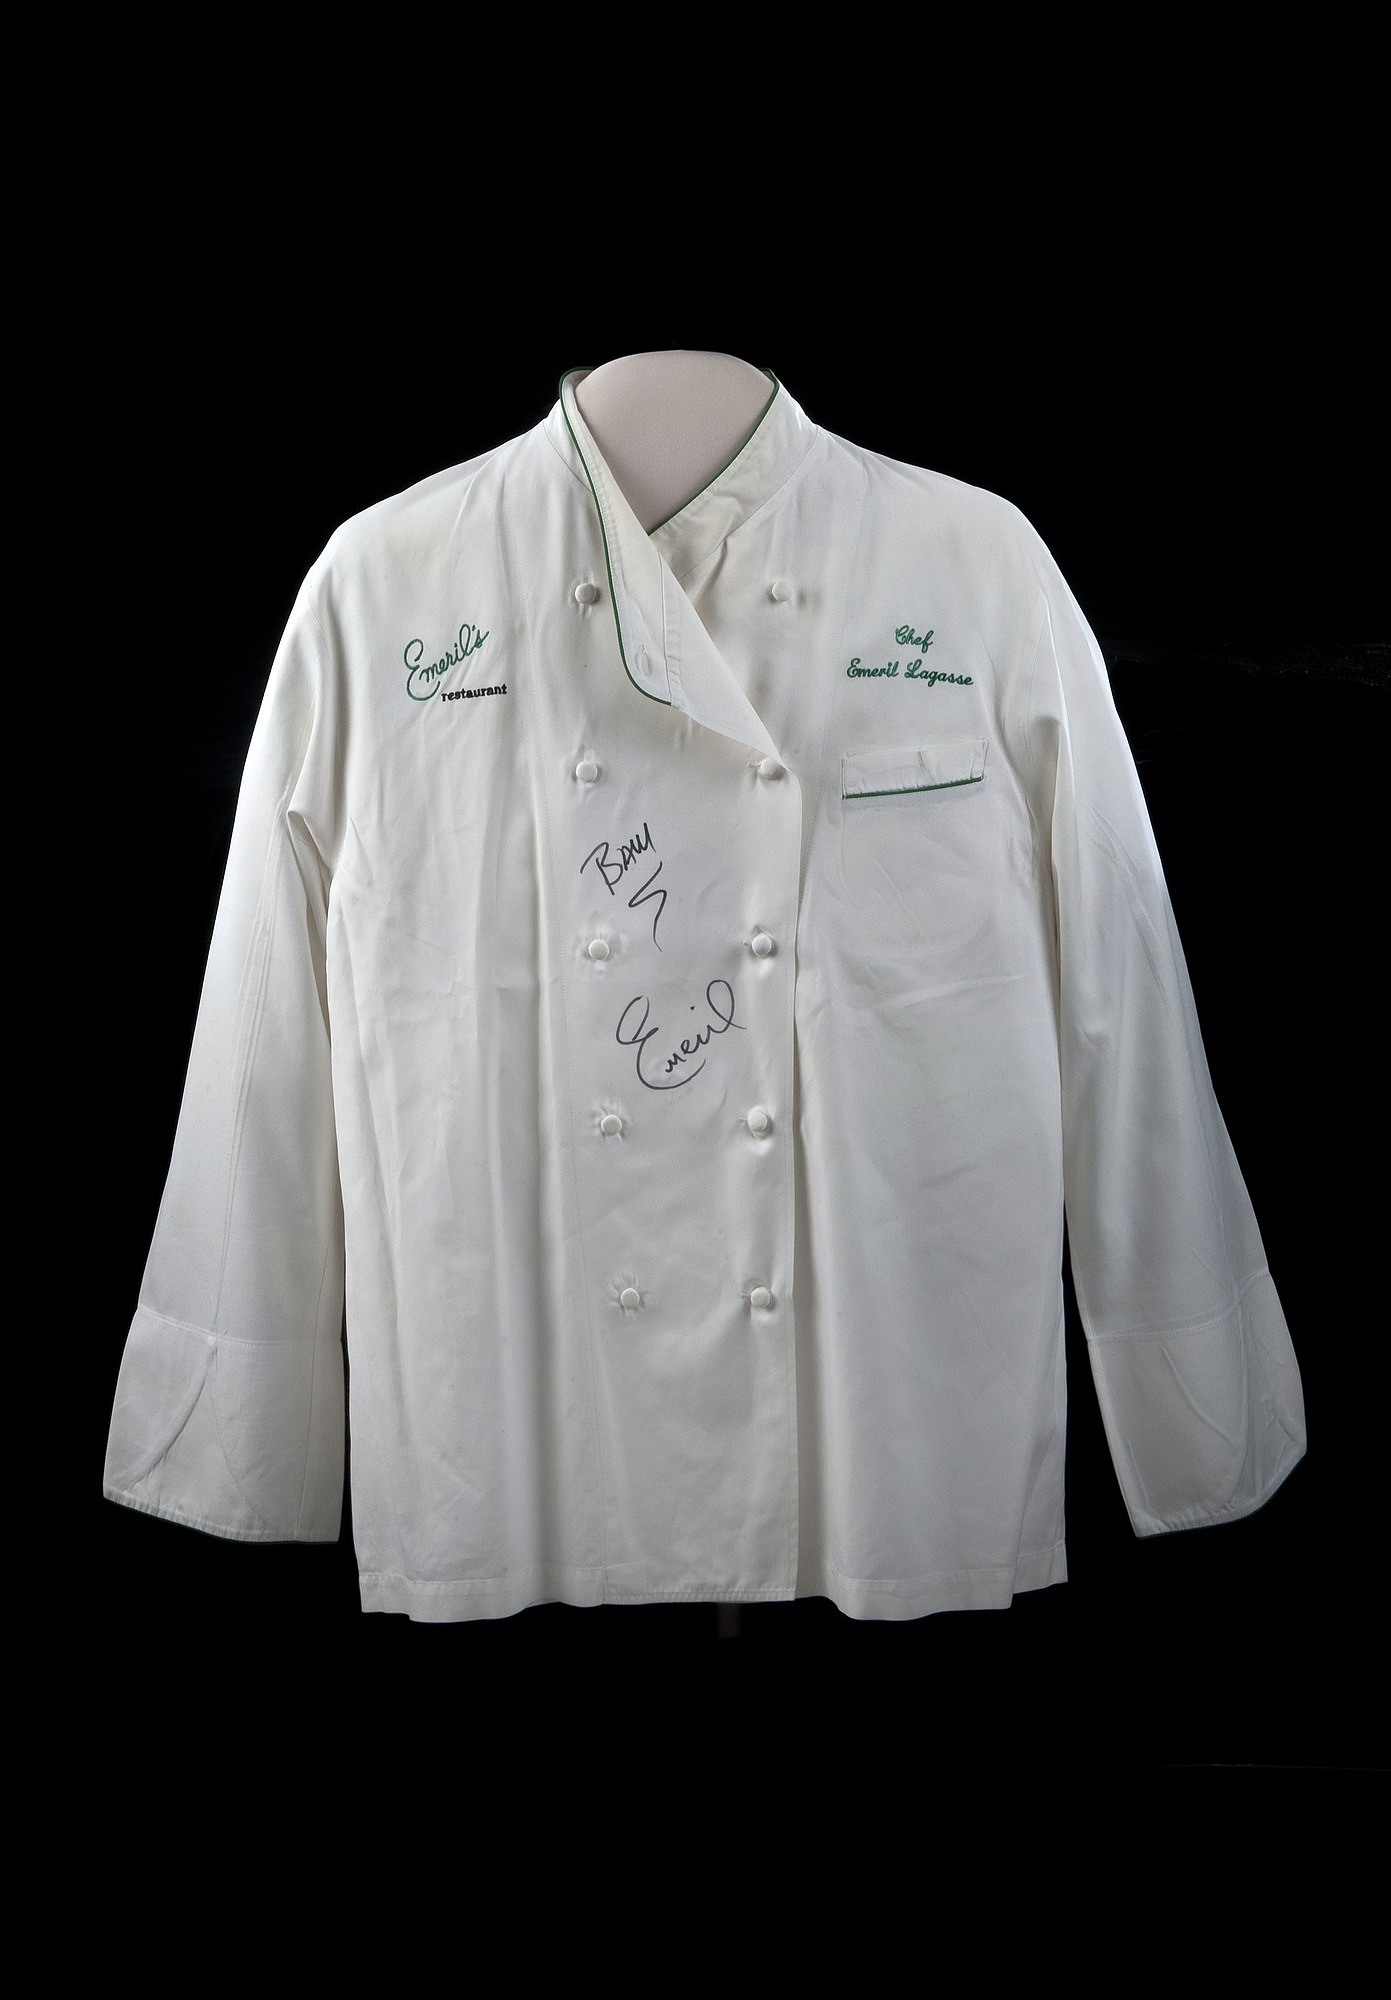 images for Chef's Jacket, Emeril Lagasse